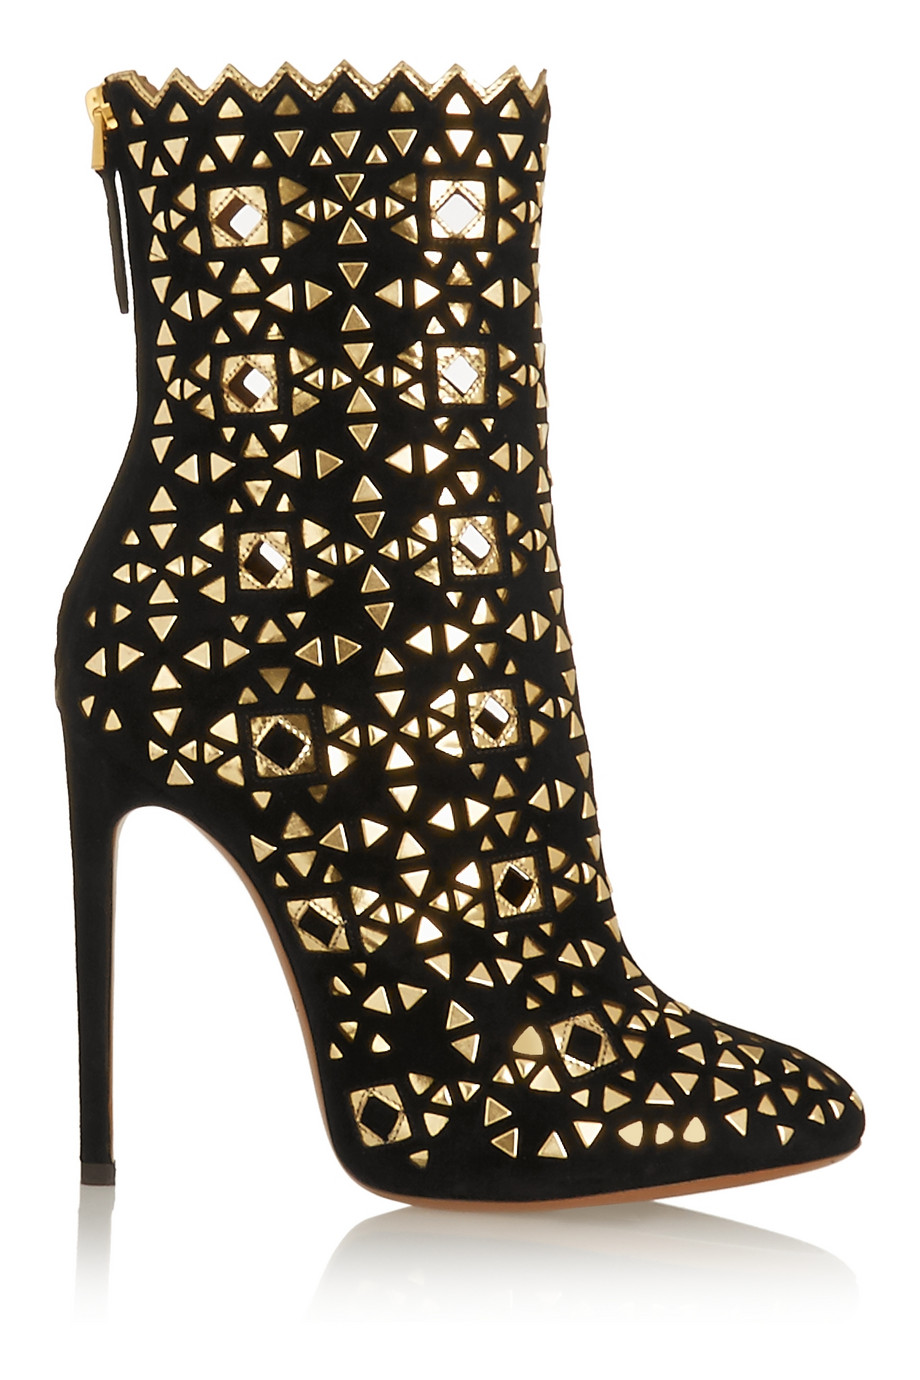 Alaia Gold Embellished Suede Boots $1388